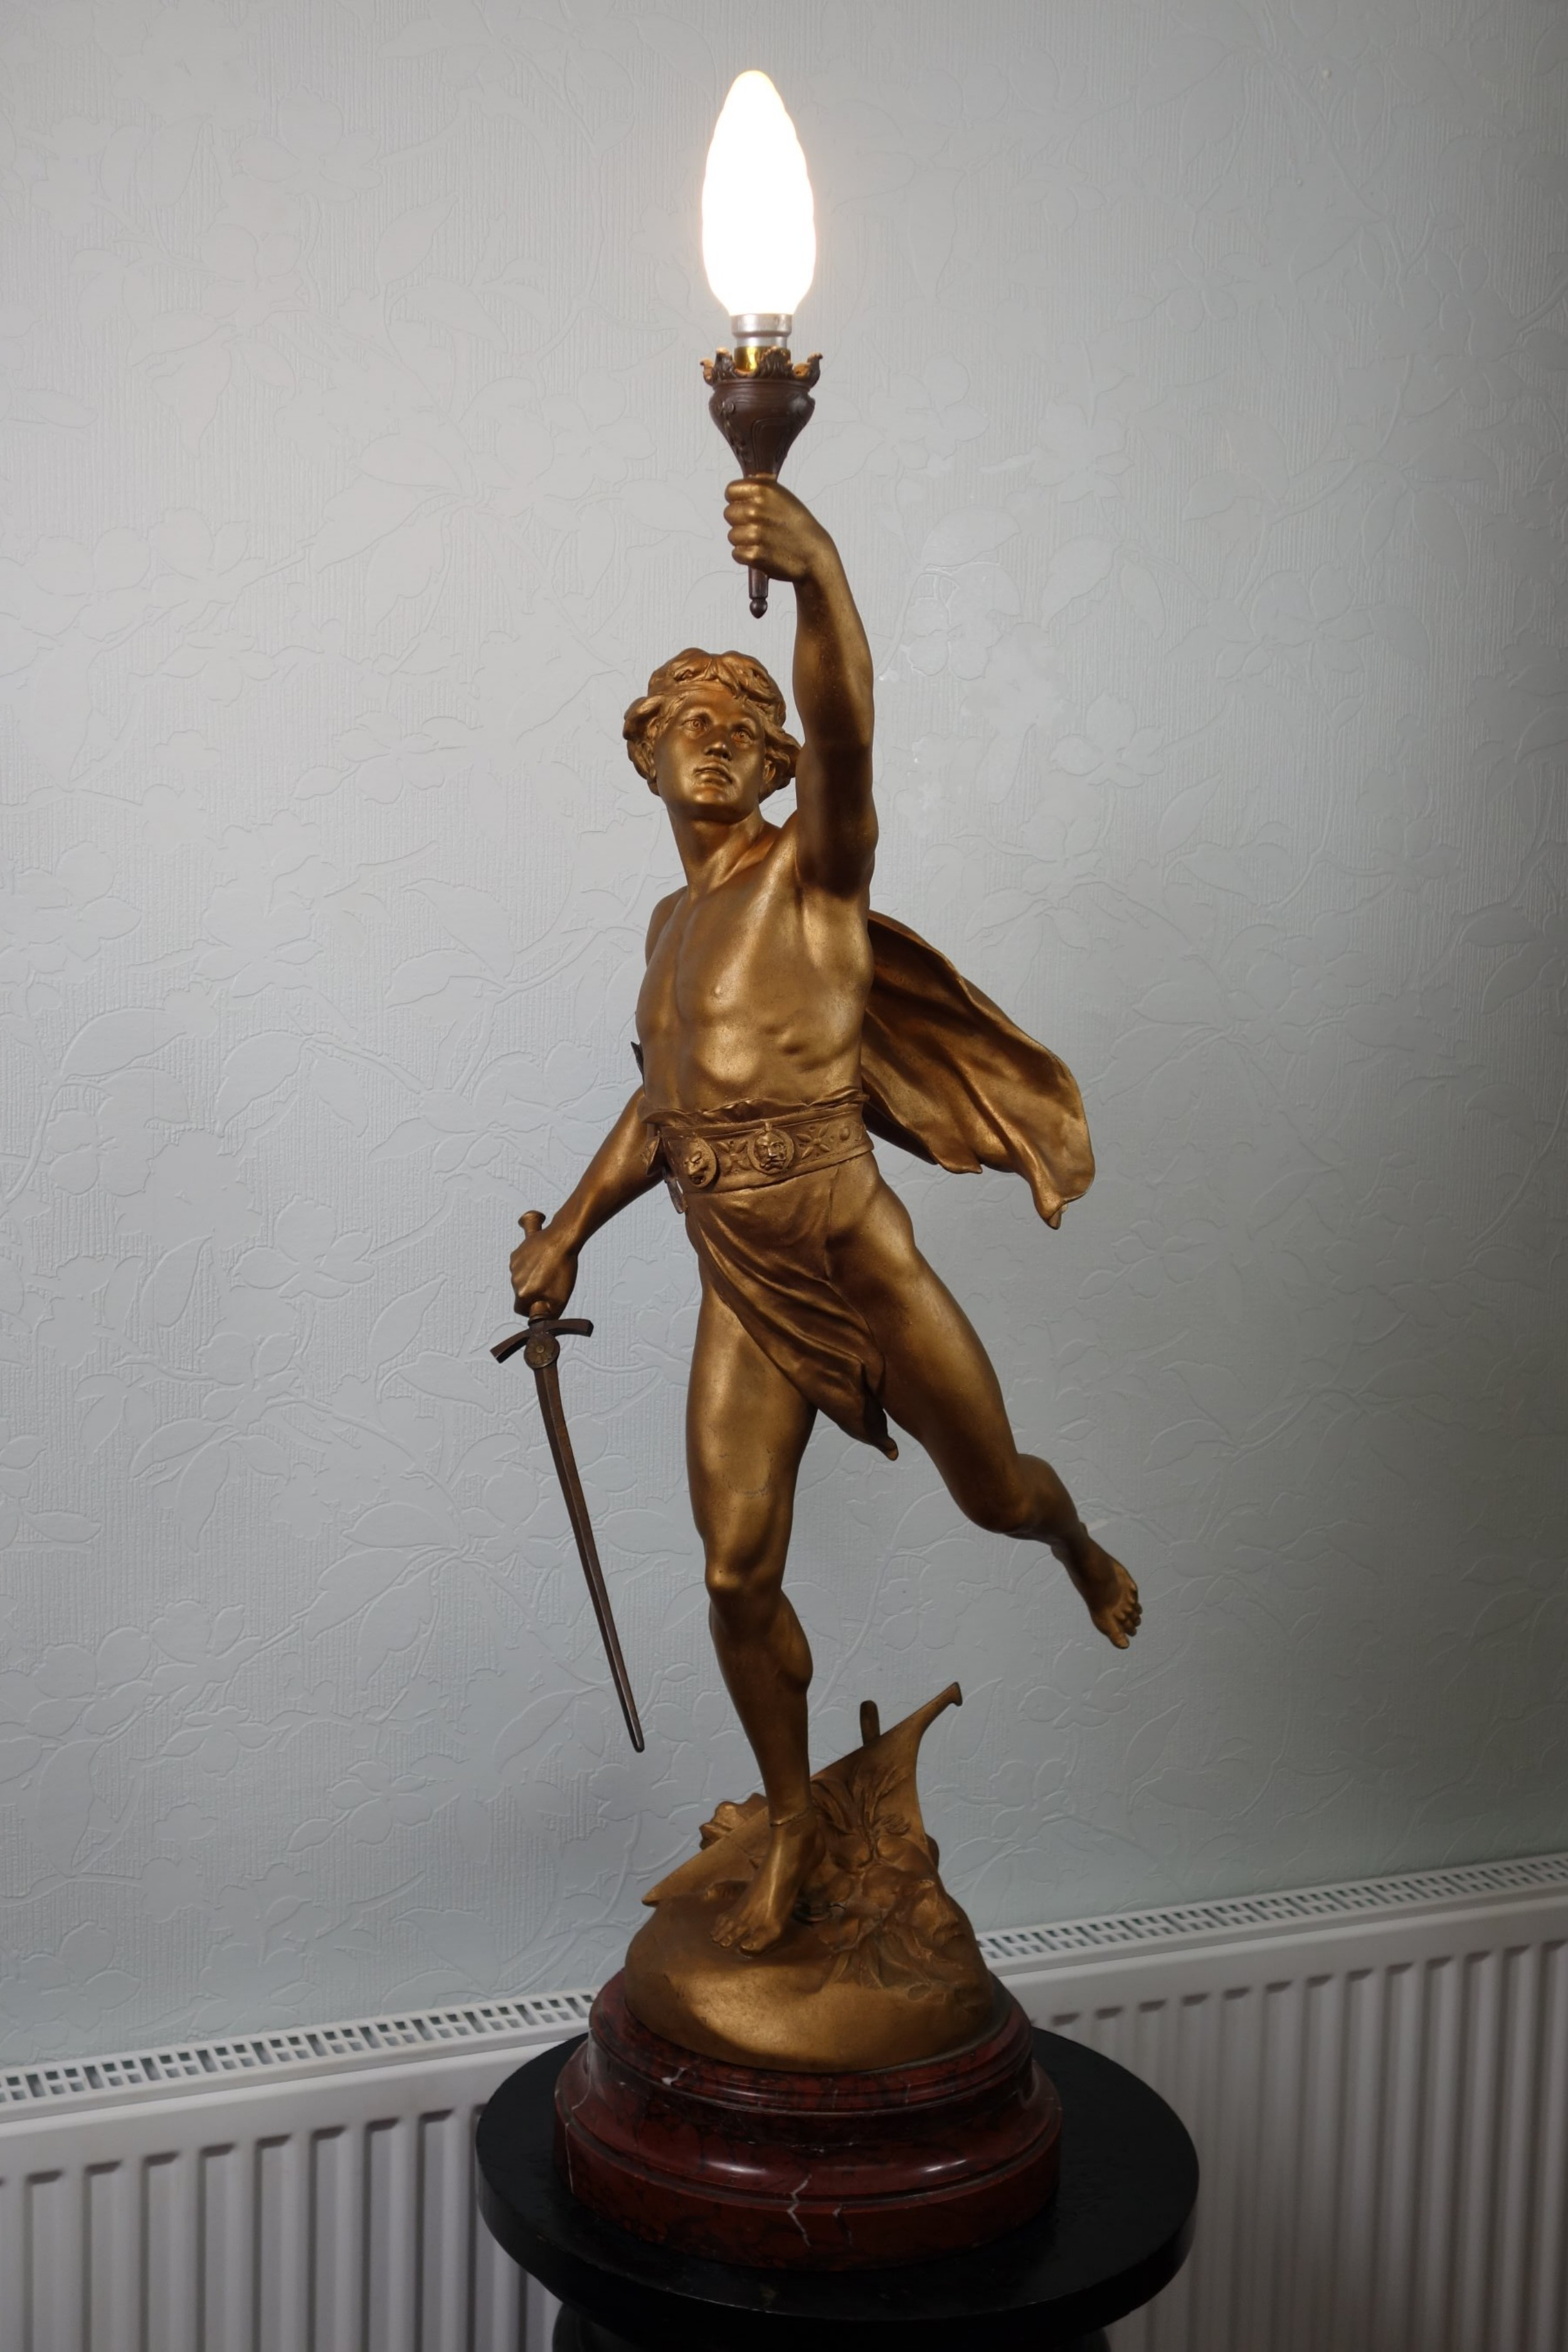 victory bronzedgilt large spelter brass lamp on variegated red marble base circa 1900 36in tall